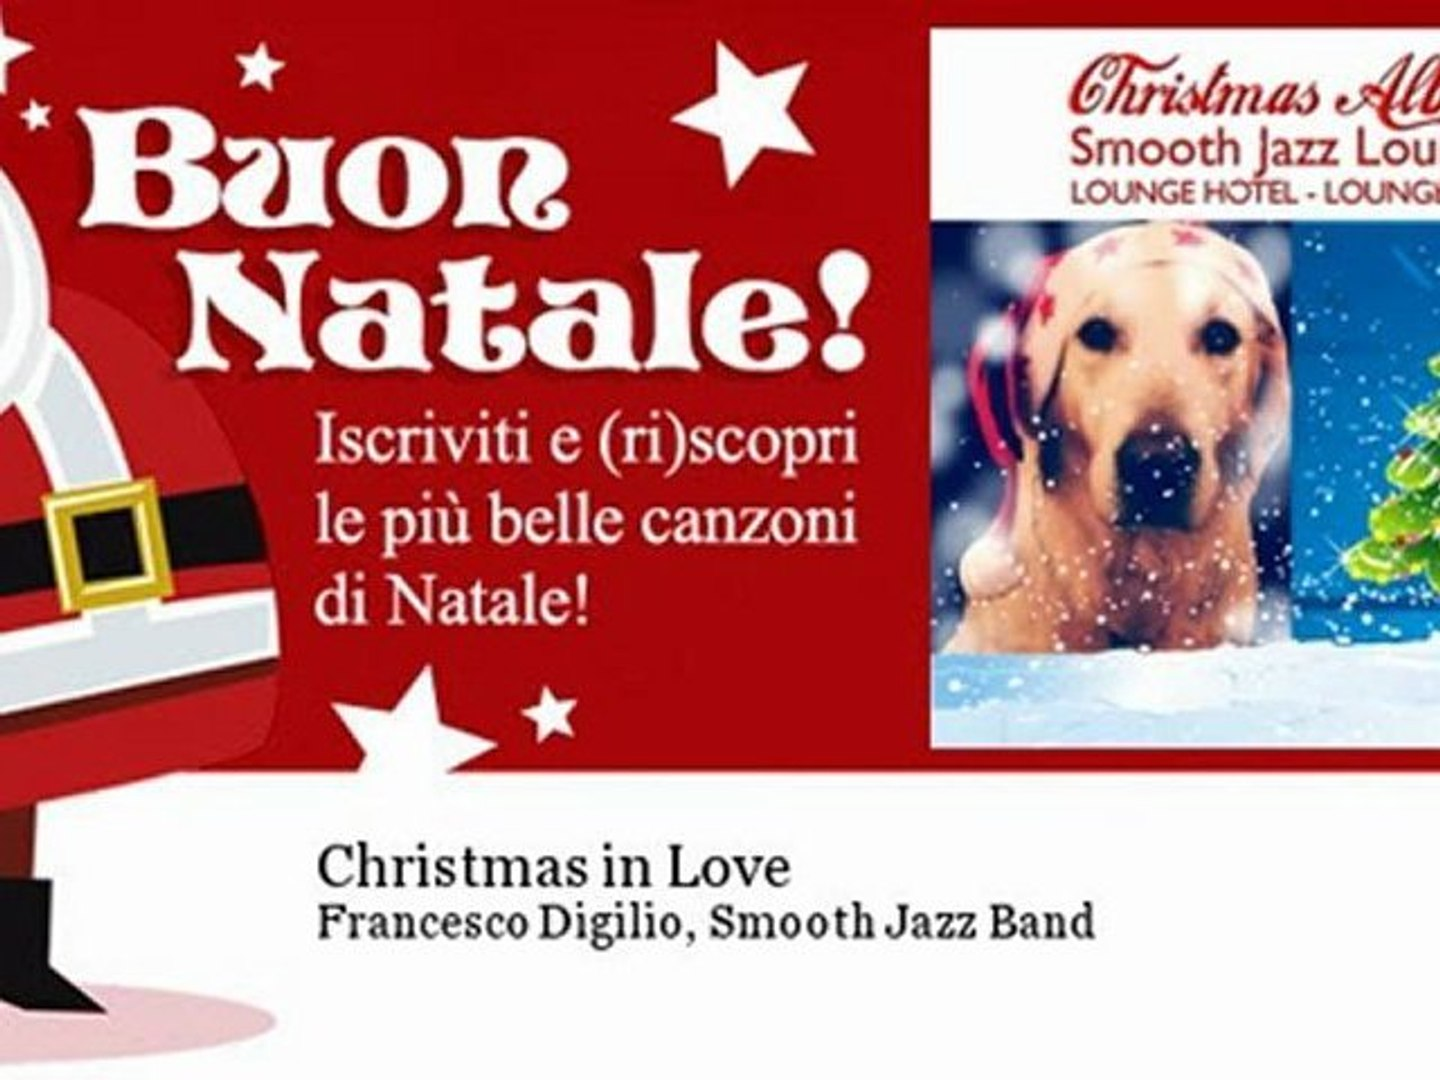 Francesco Digilio, Smooth Jazz Band - Christmas in Love - Natale